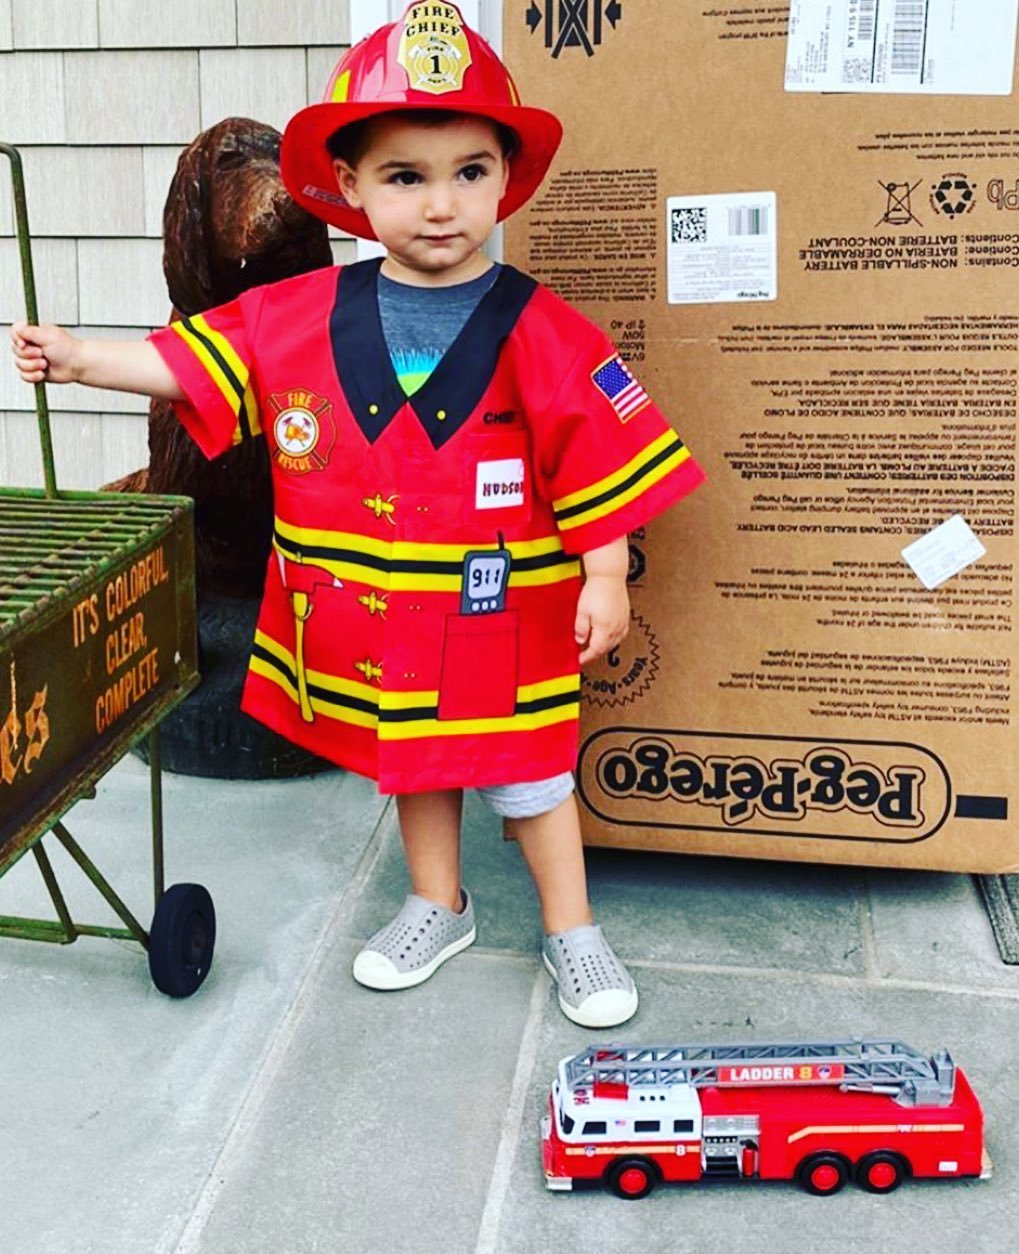 LBI Personalized fire hat, fire shirt and FDNY fire truck with lights, sound and exp…